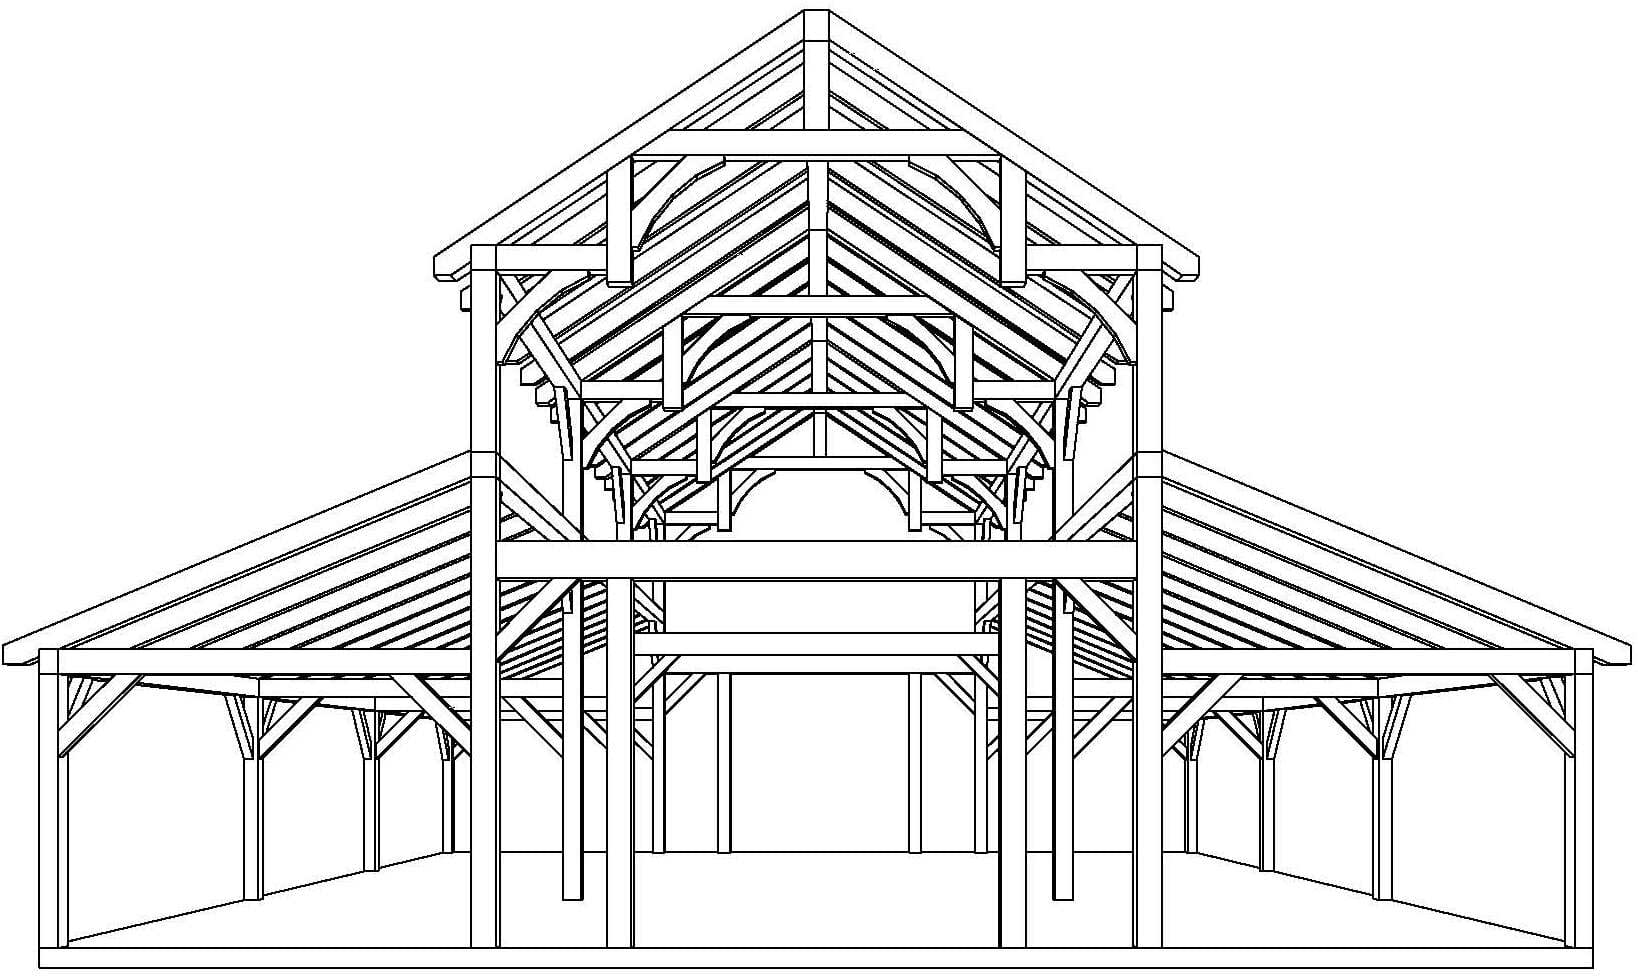 Equipment barn in tx with hemlock frame and curved braces for Frame plan